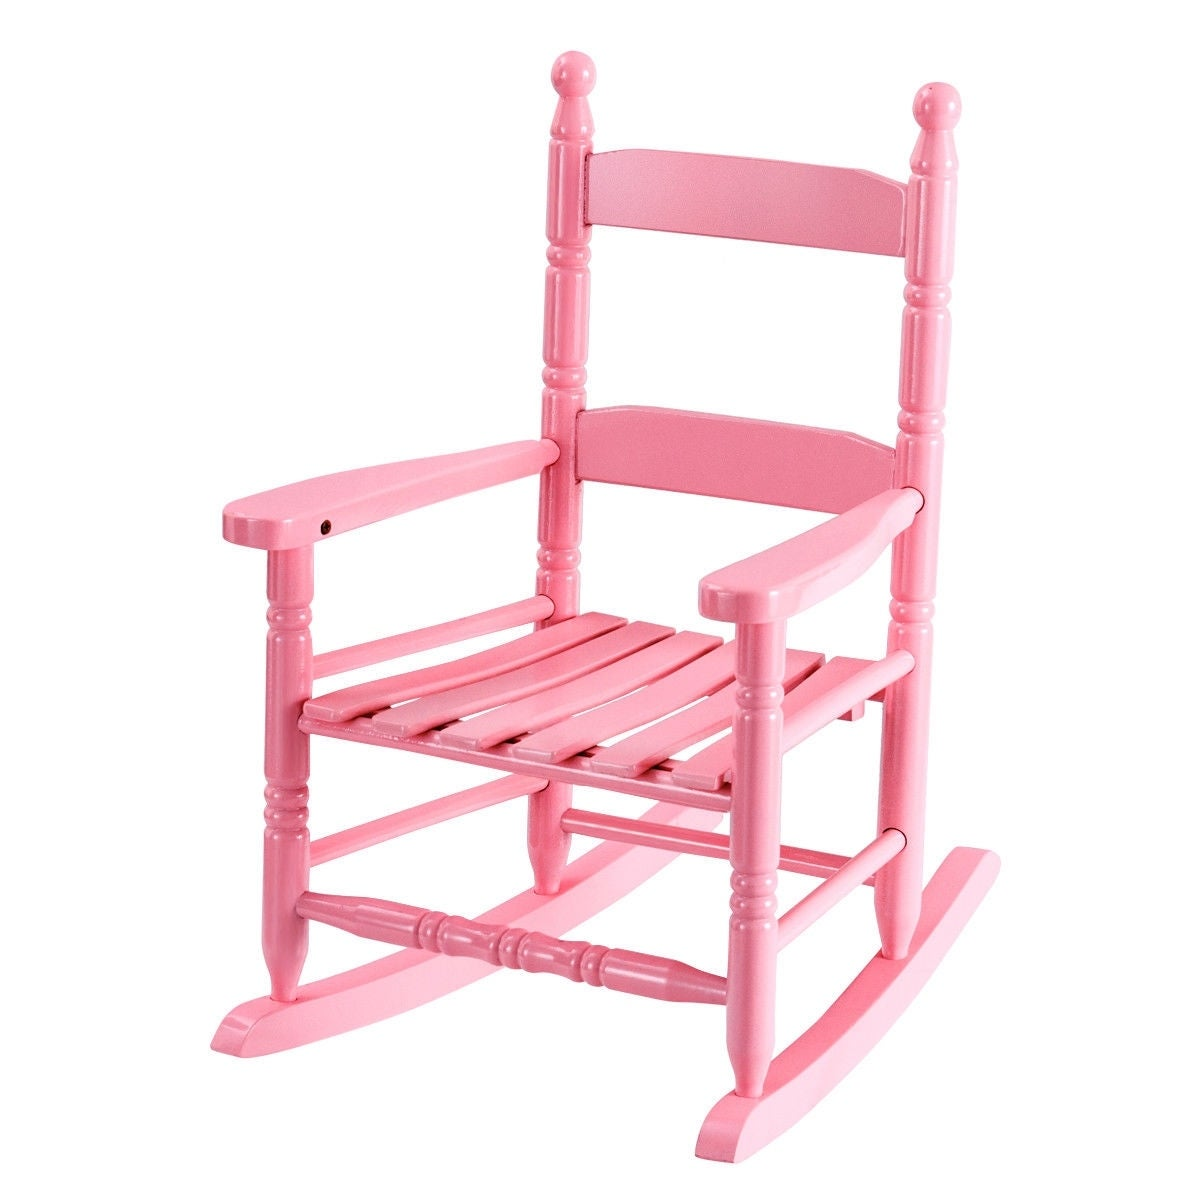 Classic Wooden Children Kids Rocking Chair Slat Back Furniture Bedroom Pink